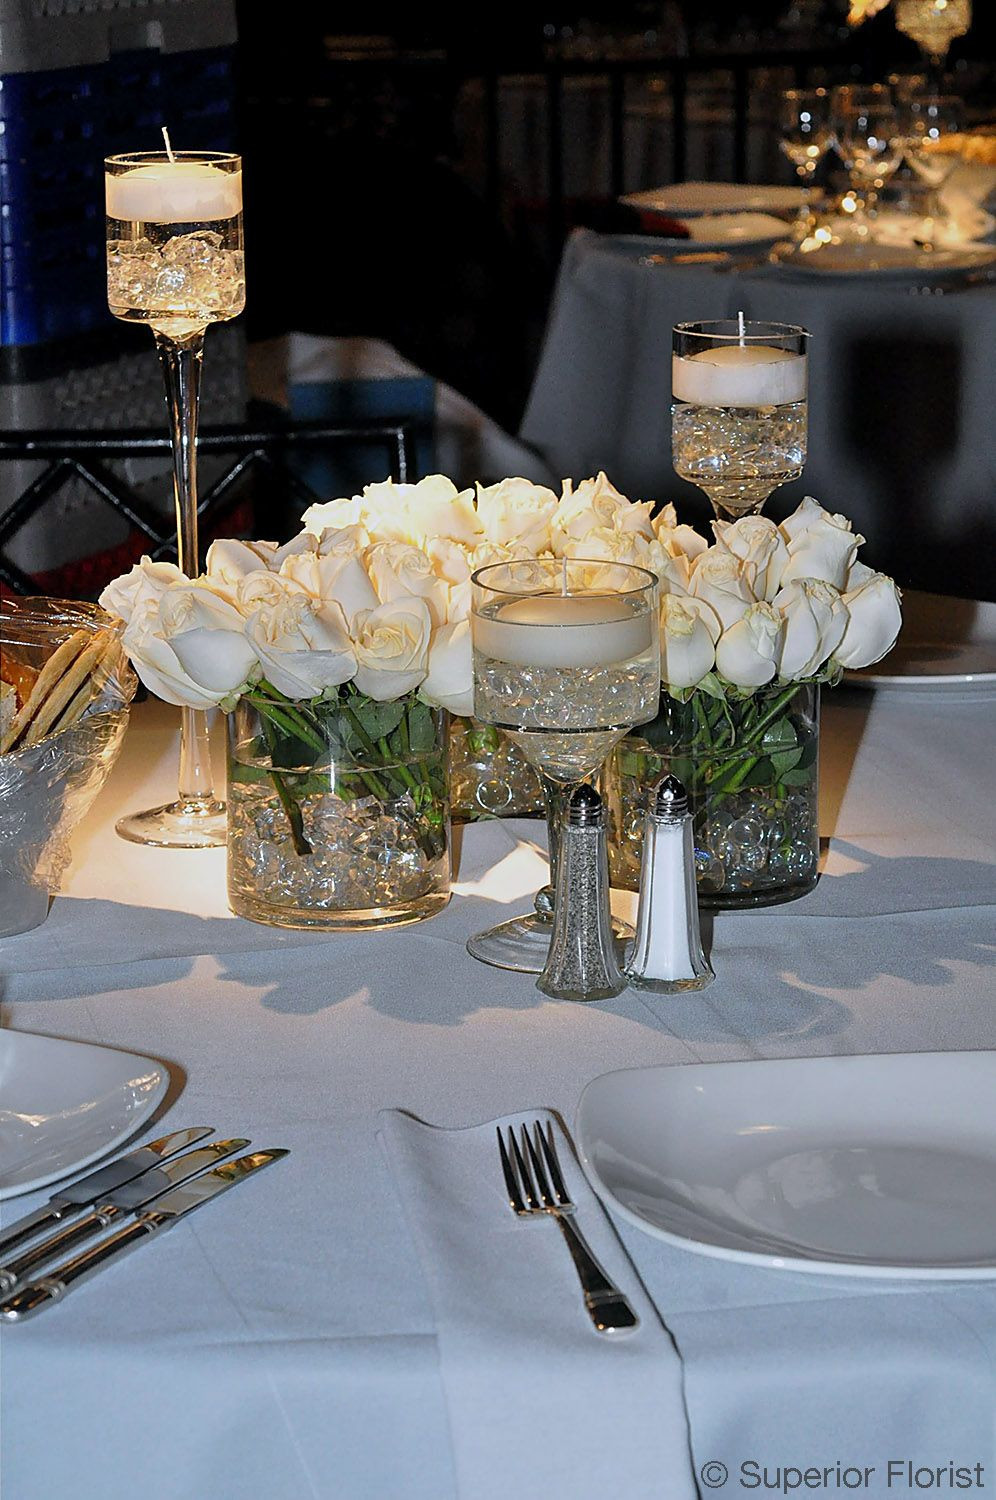 Orchid In Cylinder Vase Of Superior Florist Centerpieces Group Of Three Glass Cylinder with Regard to Superior Florist Centerpieces Group Of Three Glass Cylinder Vases Of White Roses Vases Matched with Three Candleholders Each with A Floating Candle